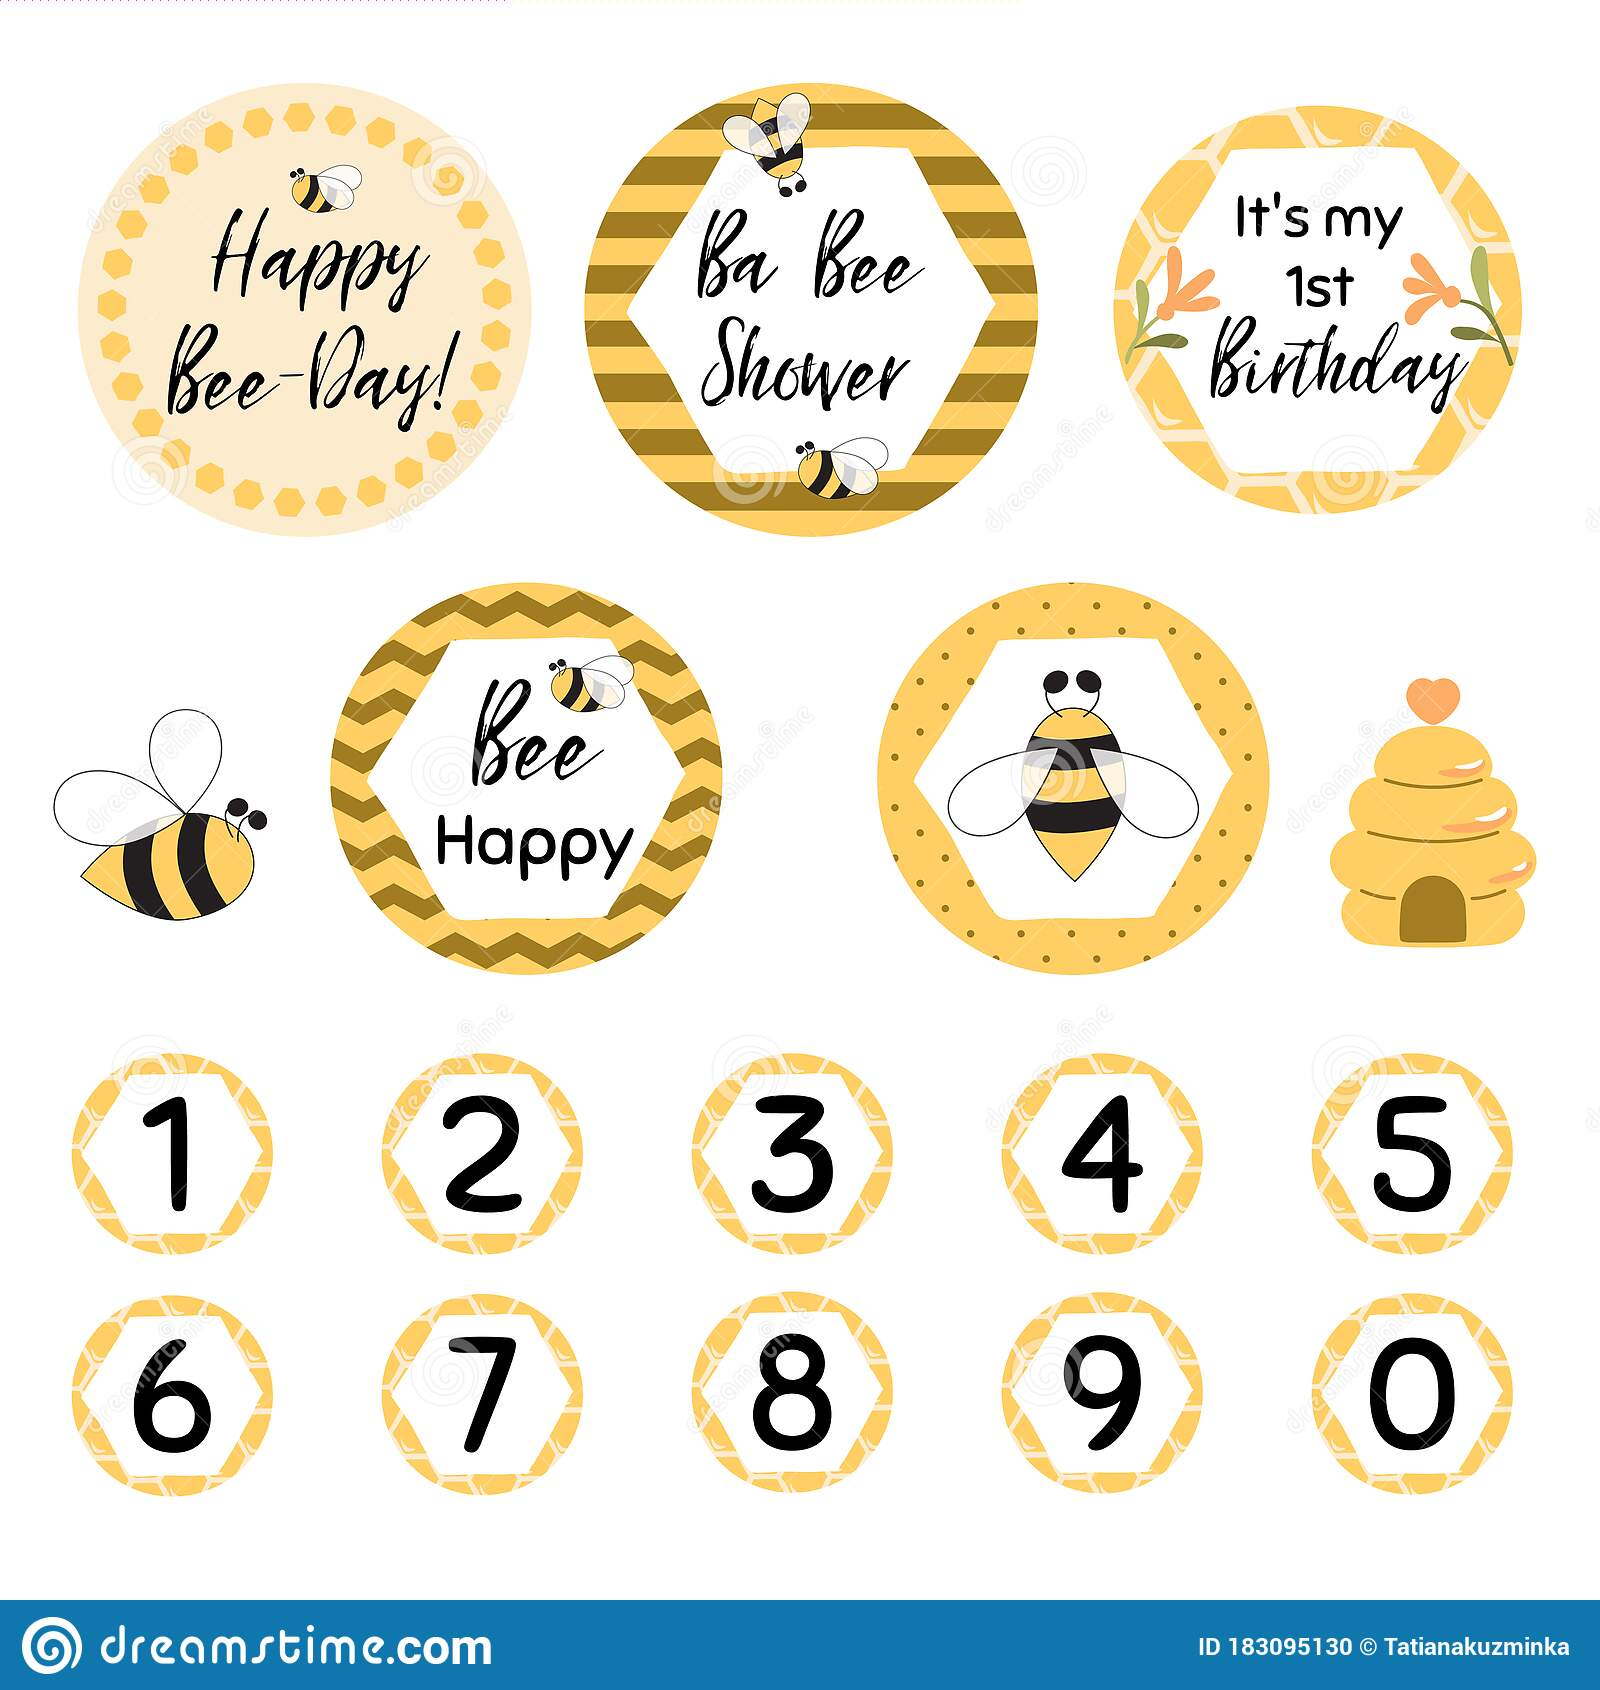 Happy Bee Day Party Decoration Circle Graphic Elements Sweet Honey Kids Birthday Party Decor Cupcake Toppers Set Vector Stock Illustration Illustration Of Baby Banner 183095130